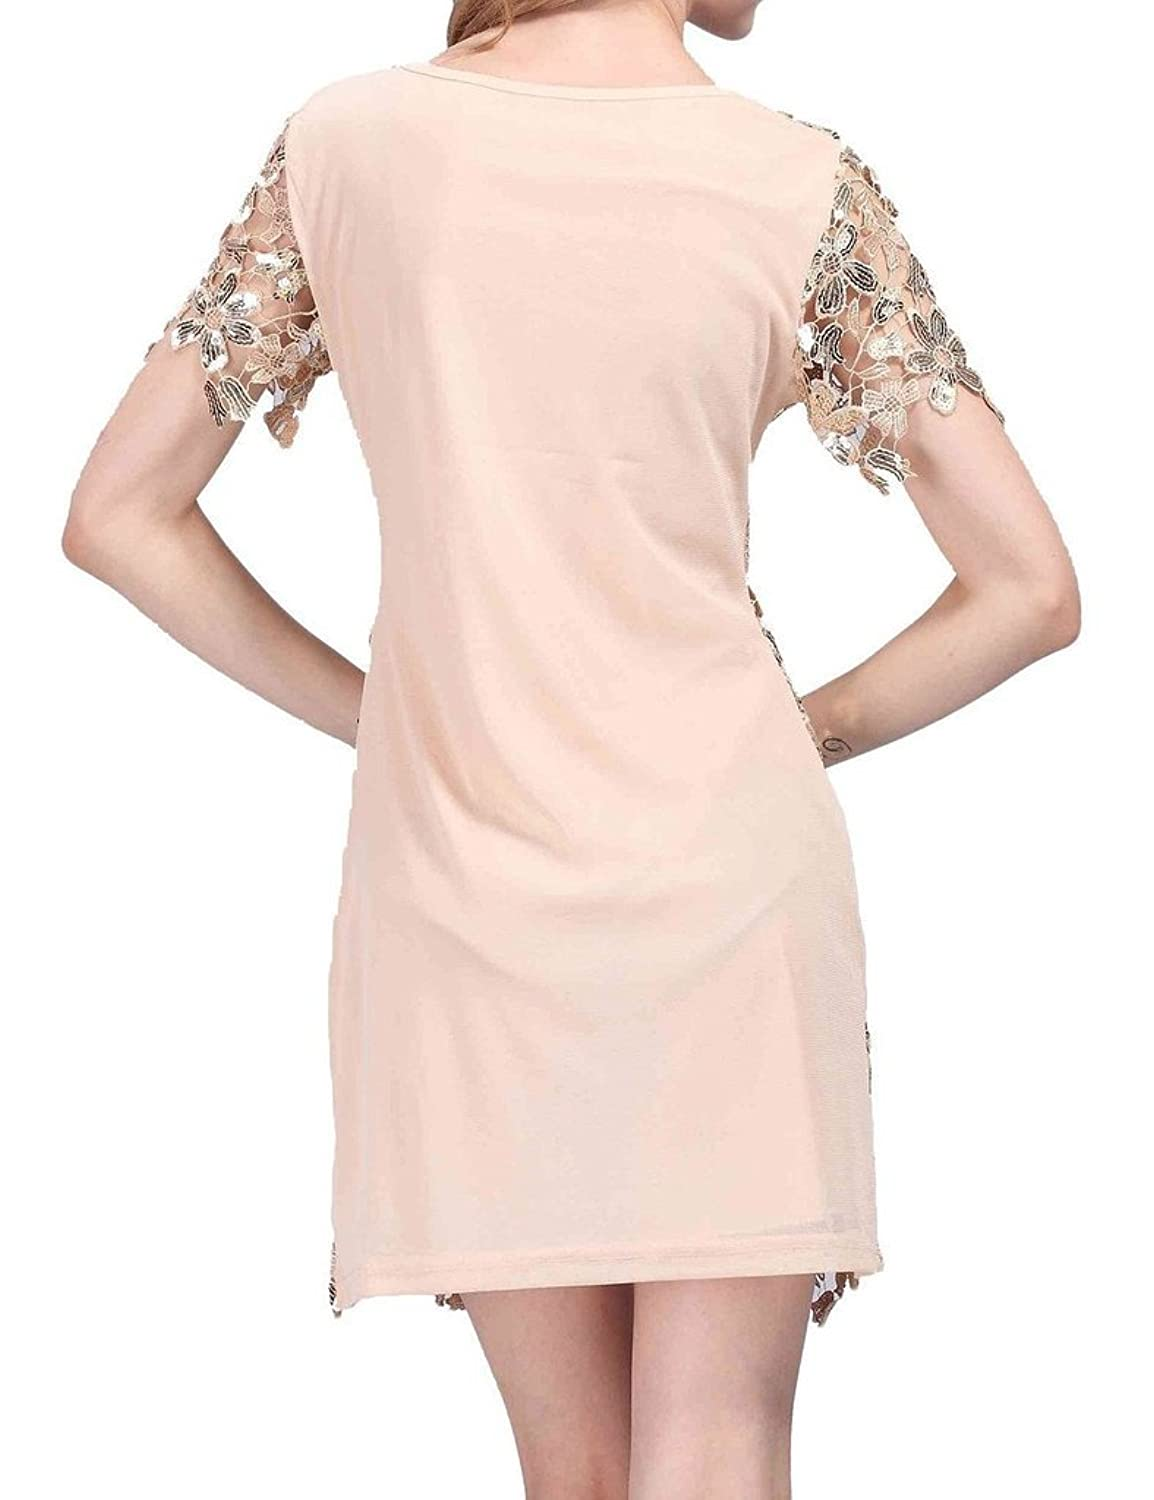 Hblld Short Sleeves Flower Sequin Cocktail Party Prom Dress Ball Gowns Beige